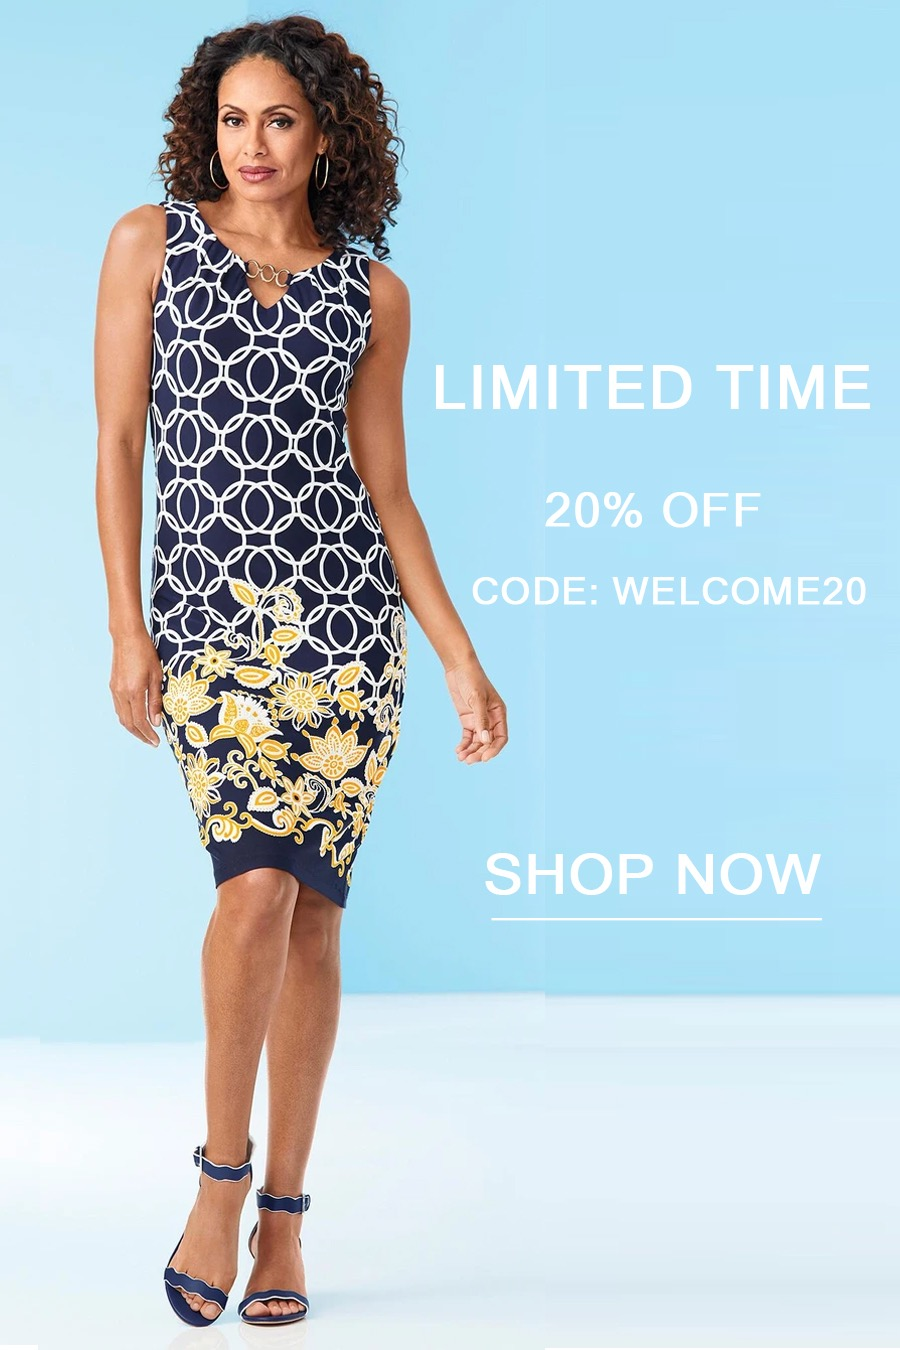 metrostyle.com - 20% off Your First Order